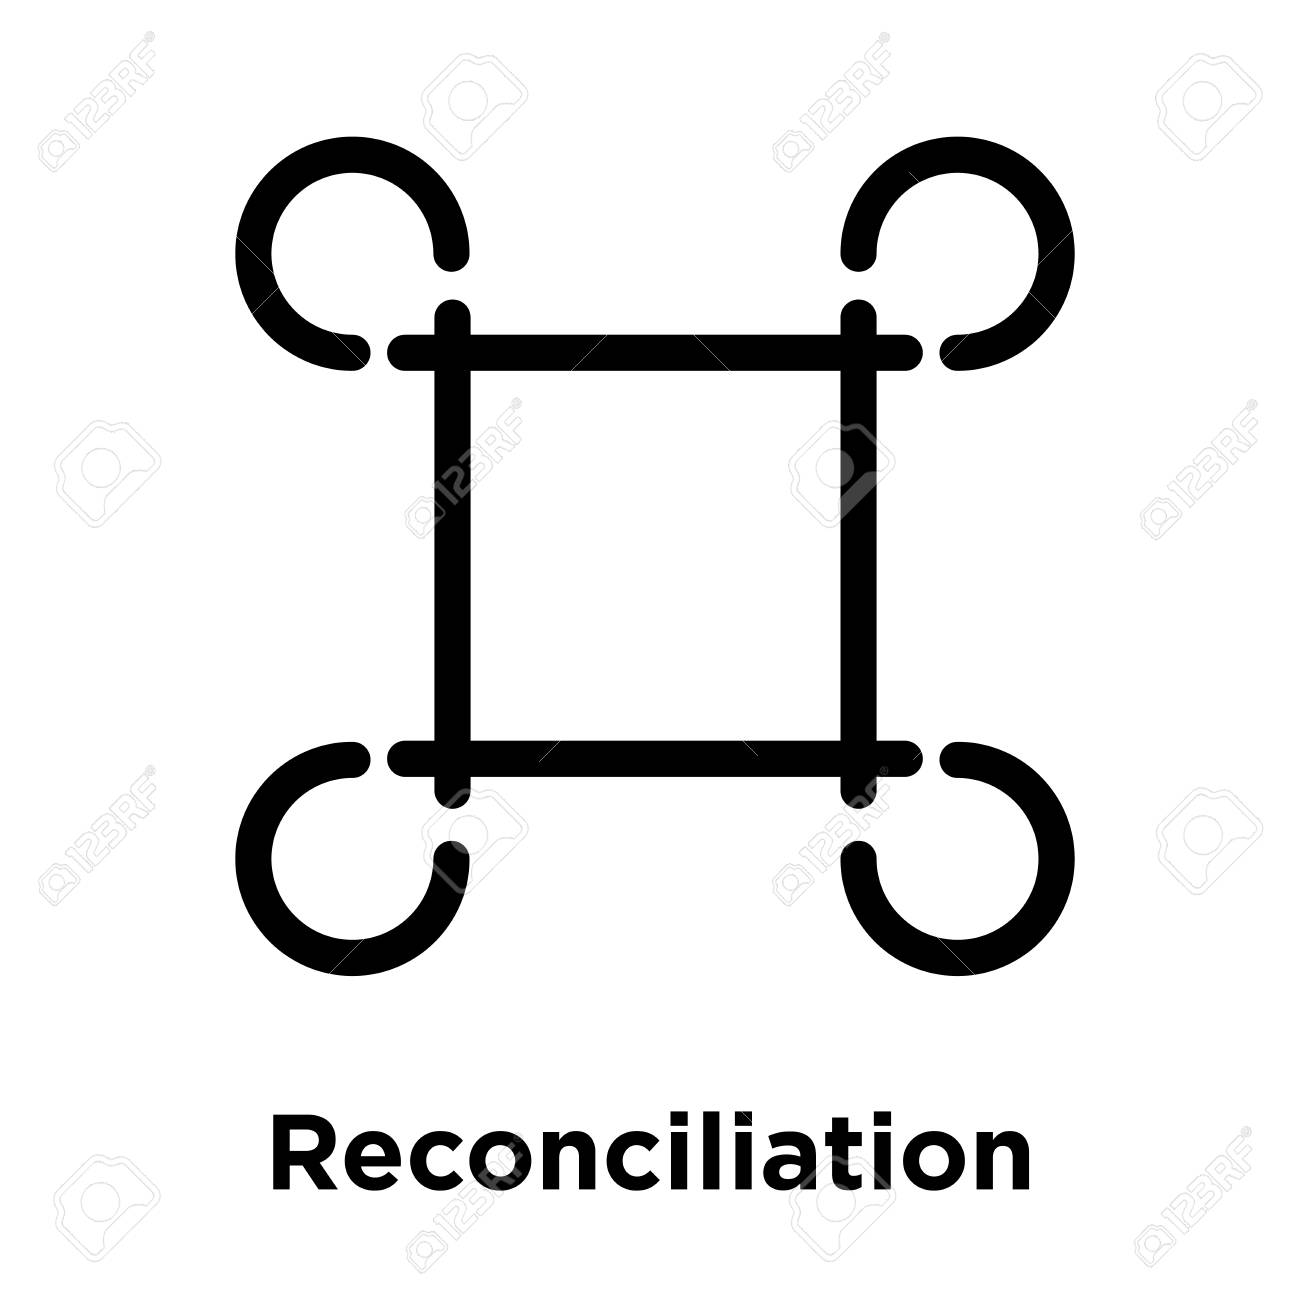 Reconciliation Icon Isolated On White Background Vector 1300x1300